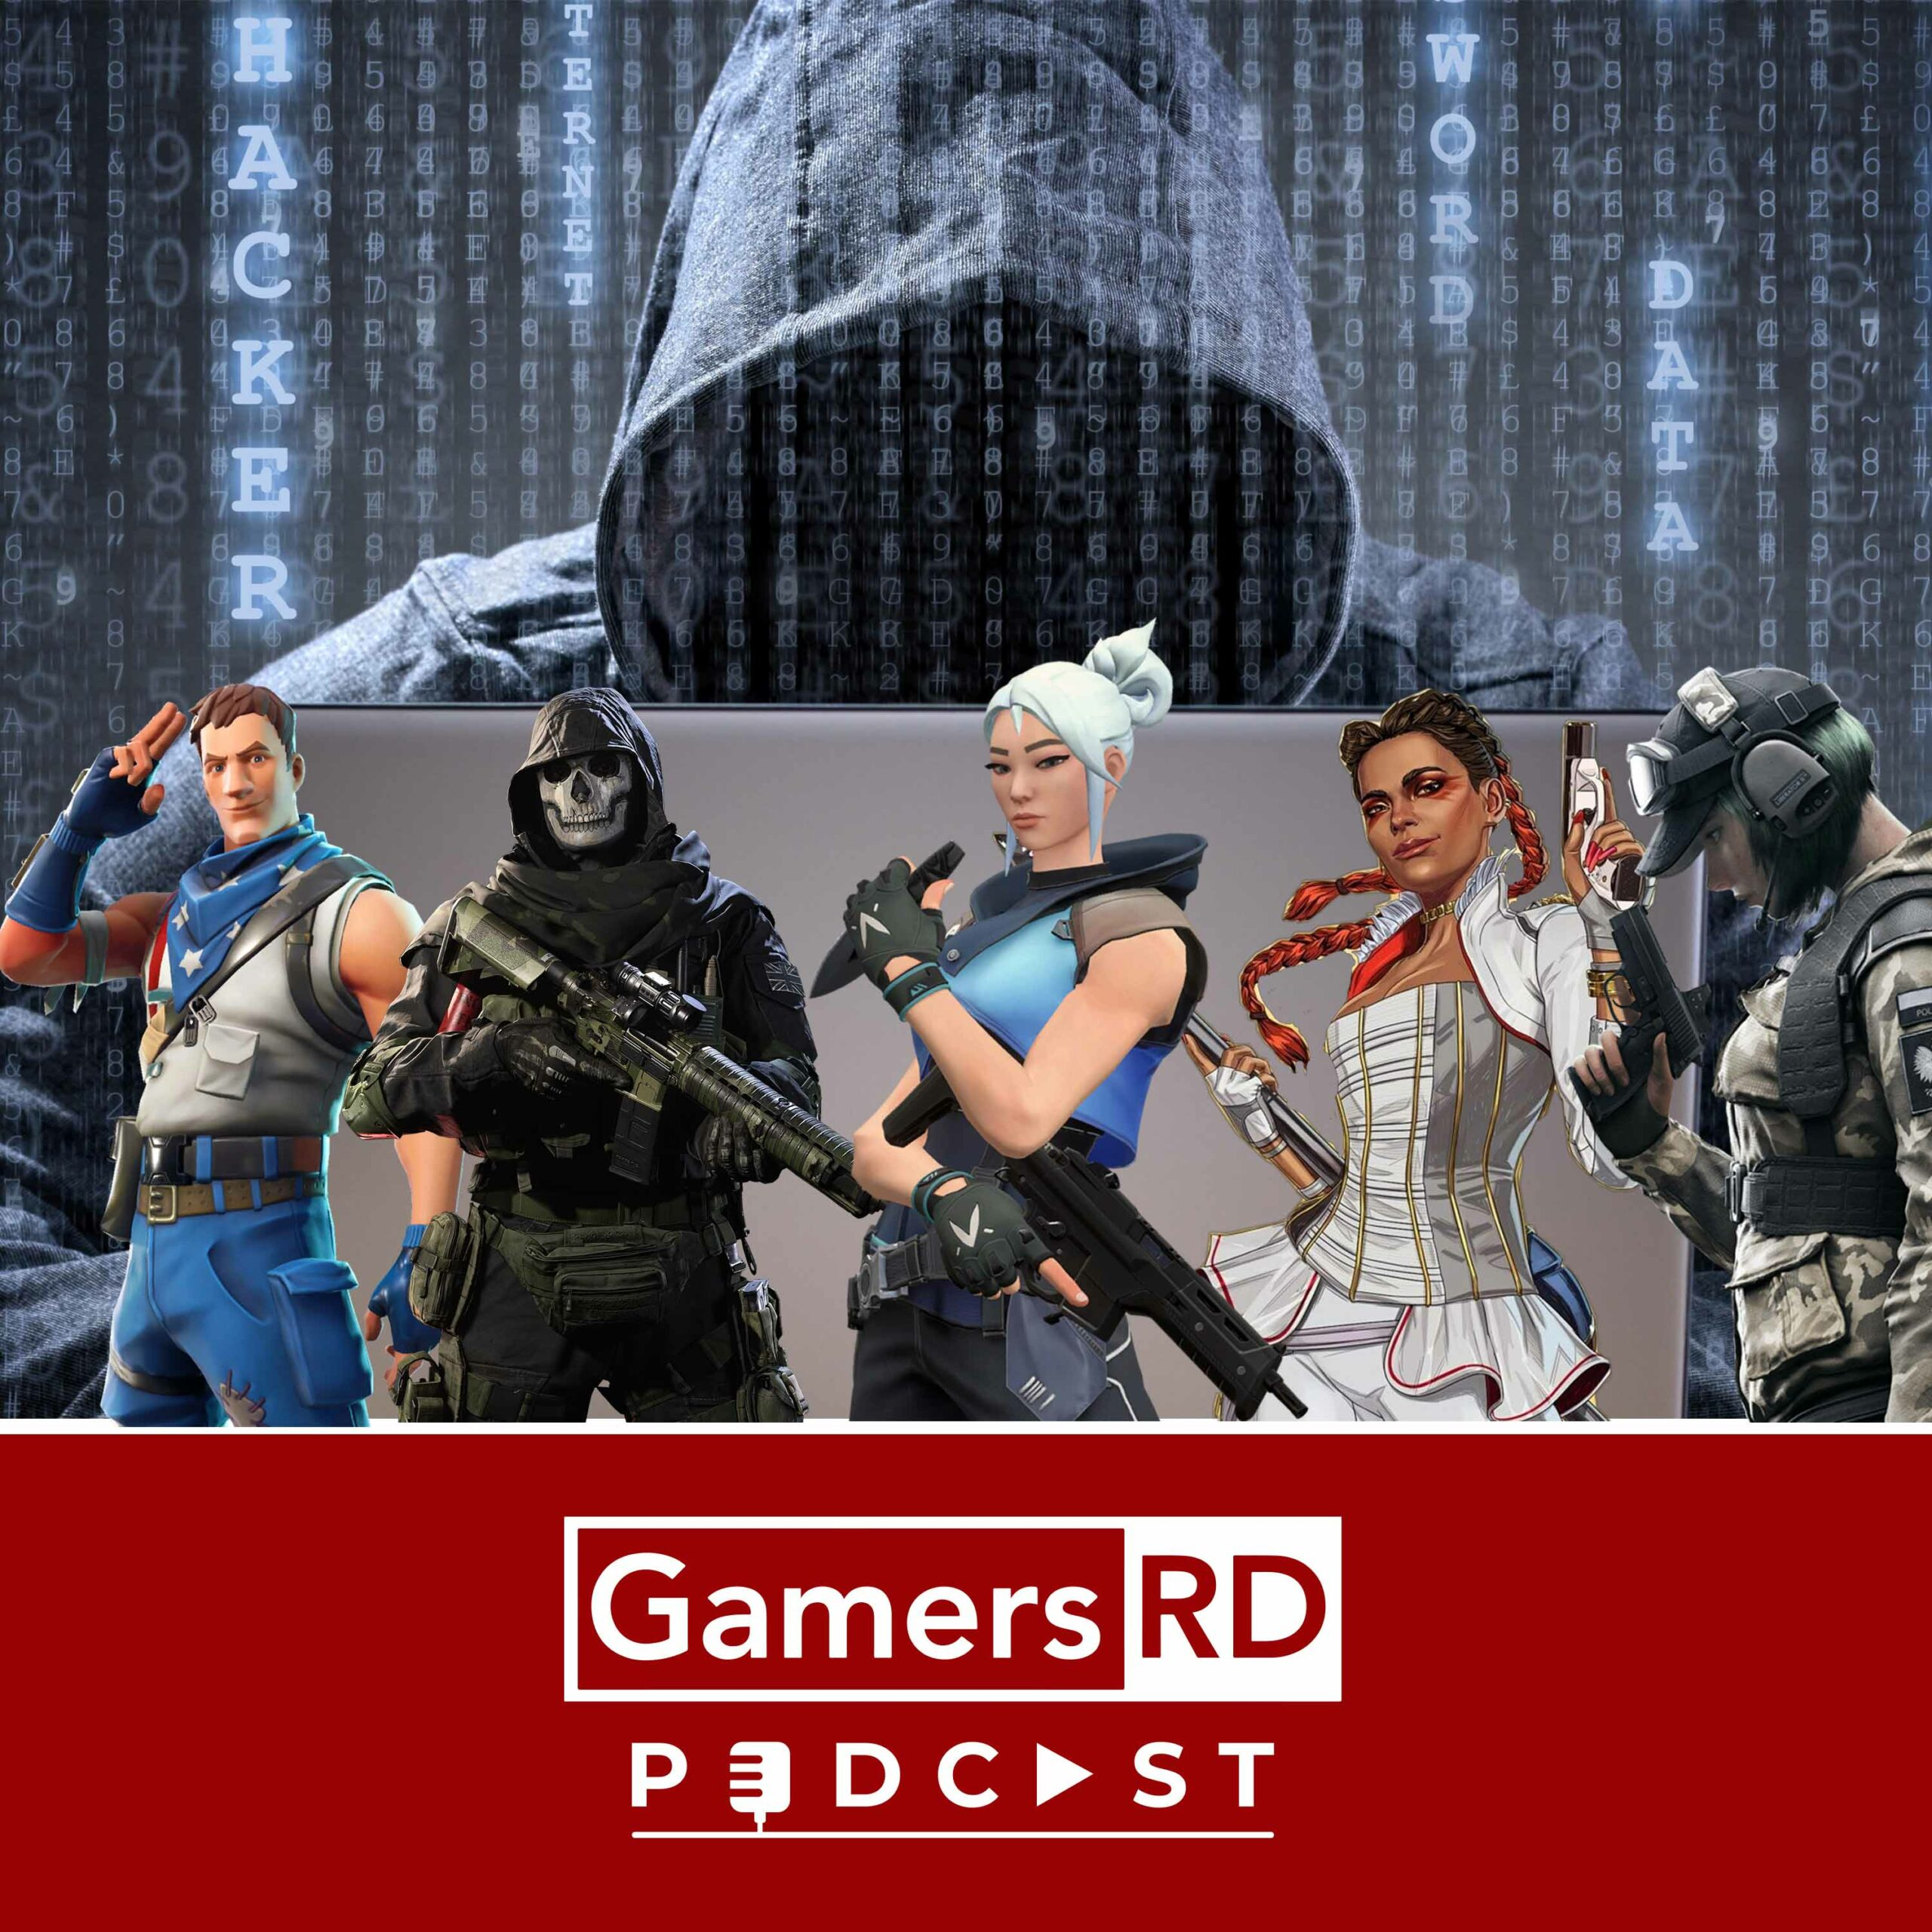 GamersRD Podcast Hackers en juegos FPS , Warzone, Call of Duty, Apex Legends, Valorant, Overwatch , Fortnite